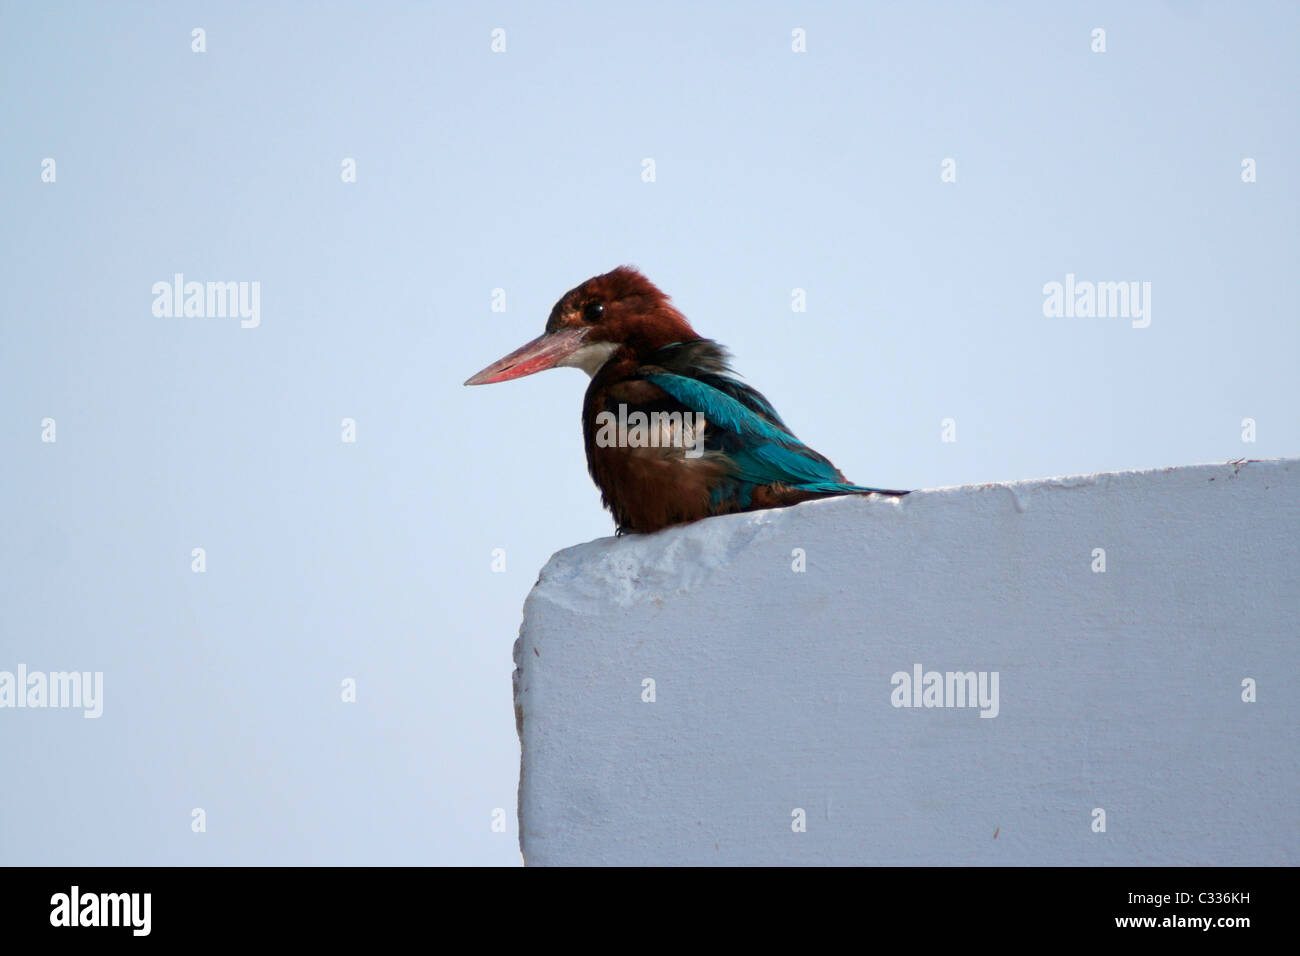 King on the wall - Stock Image